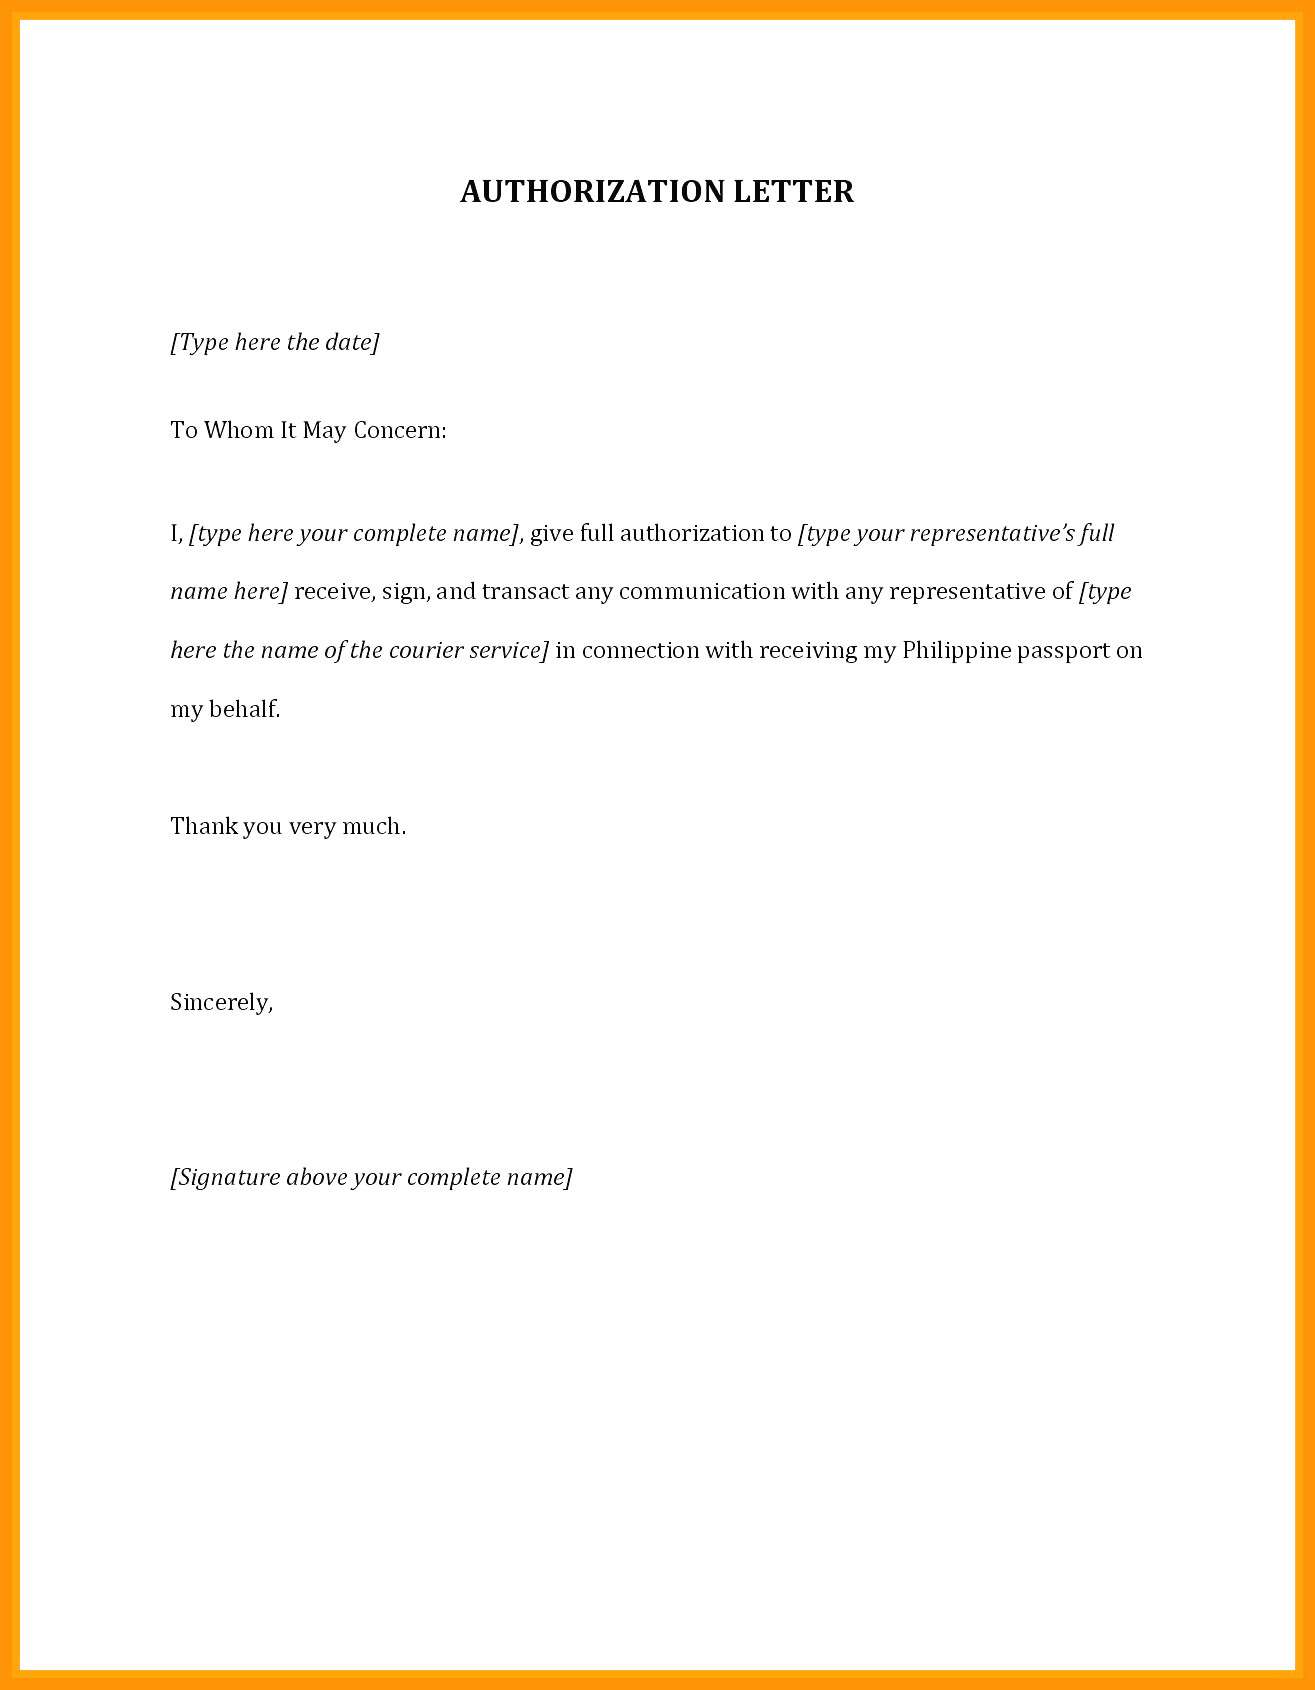 Letter of Authorization Form Free